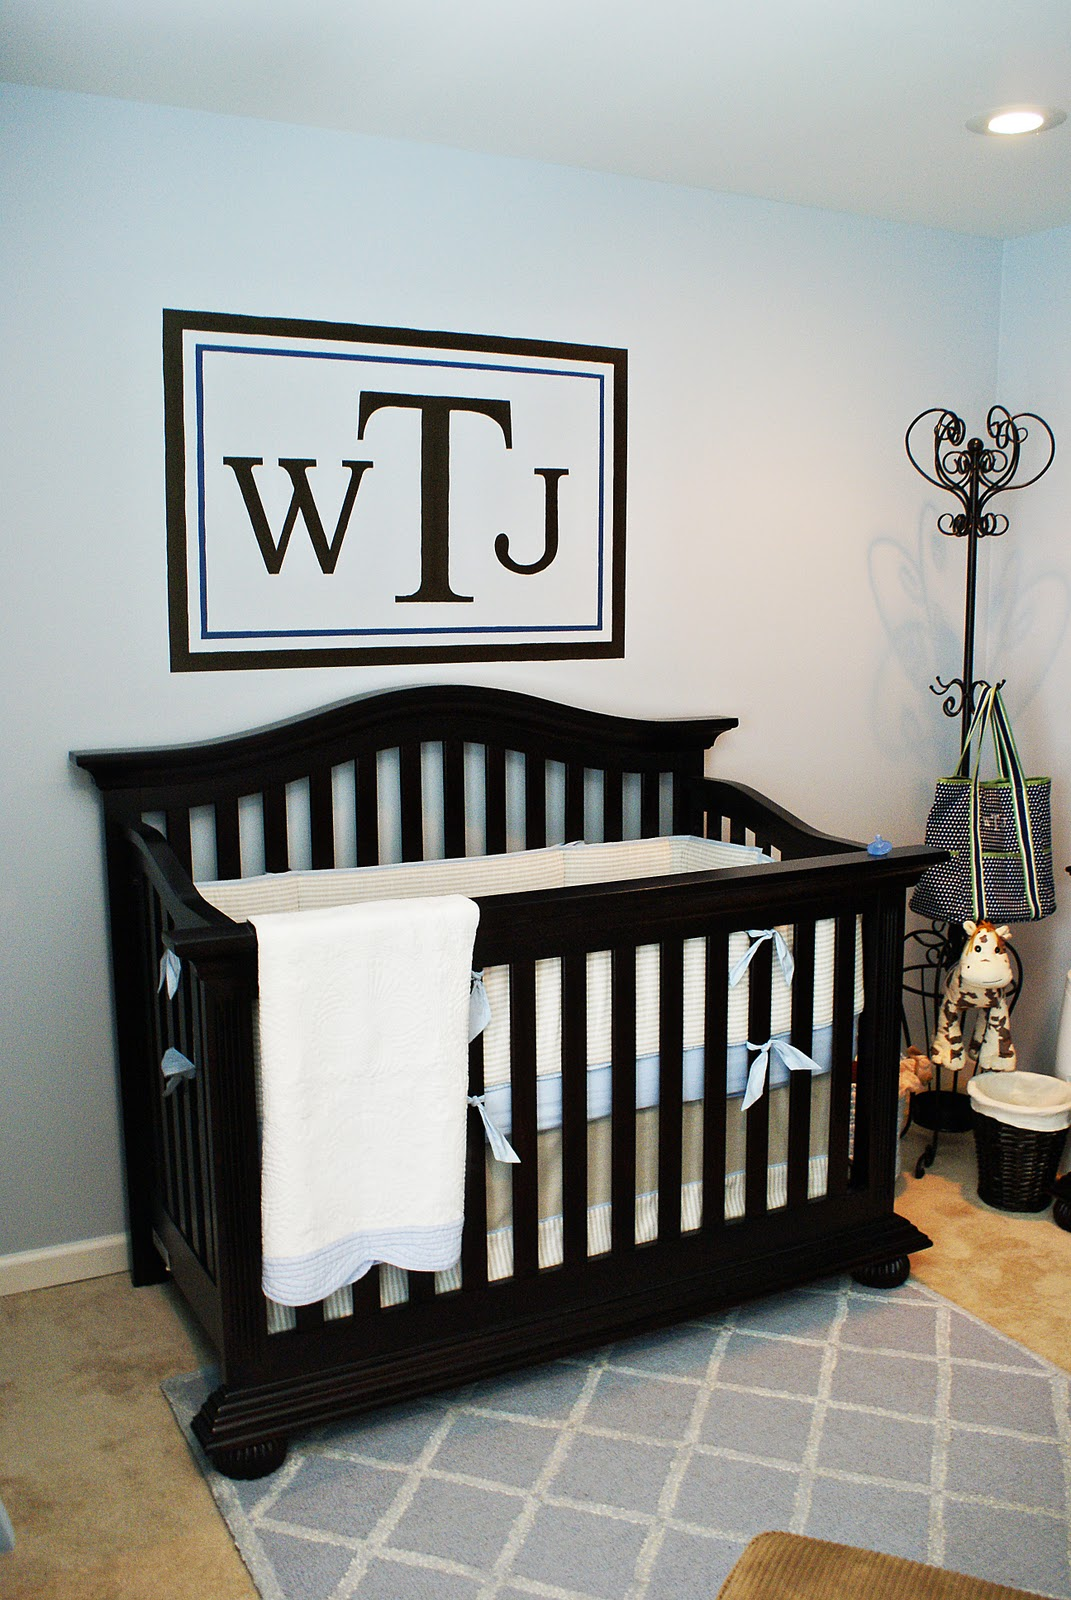 Crib Bedding Baby Boy Rooms: Defining Designs: Sweet Baby Boy Nursery